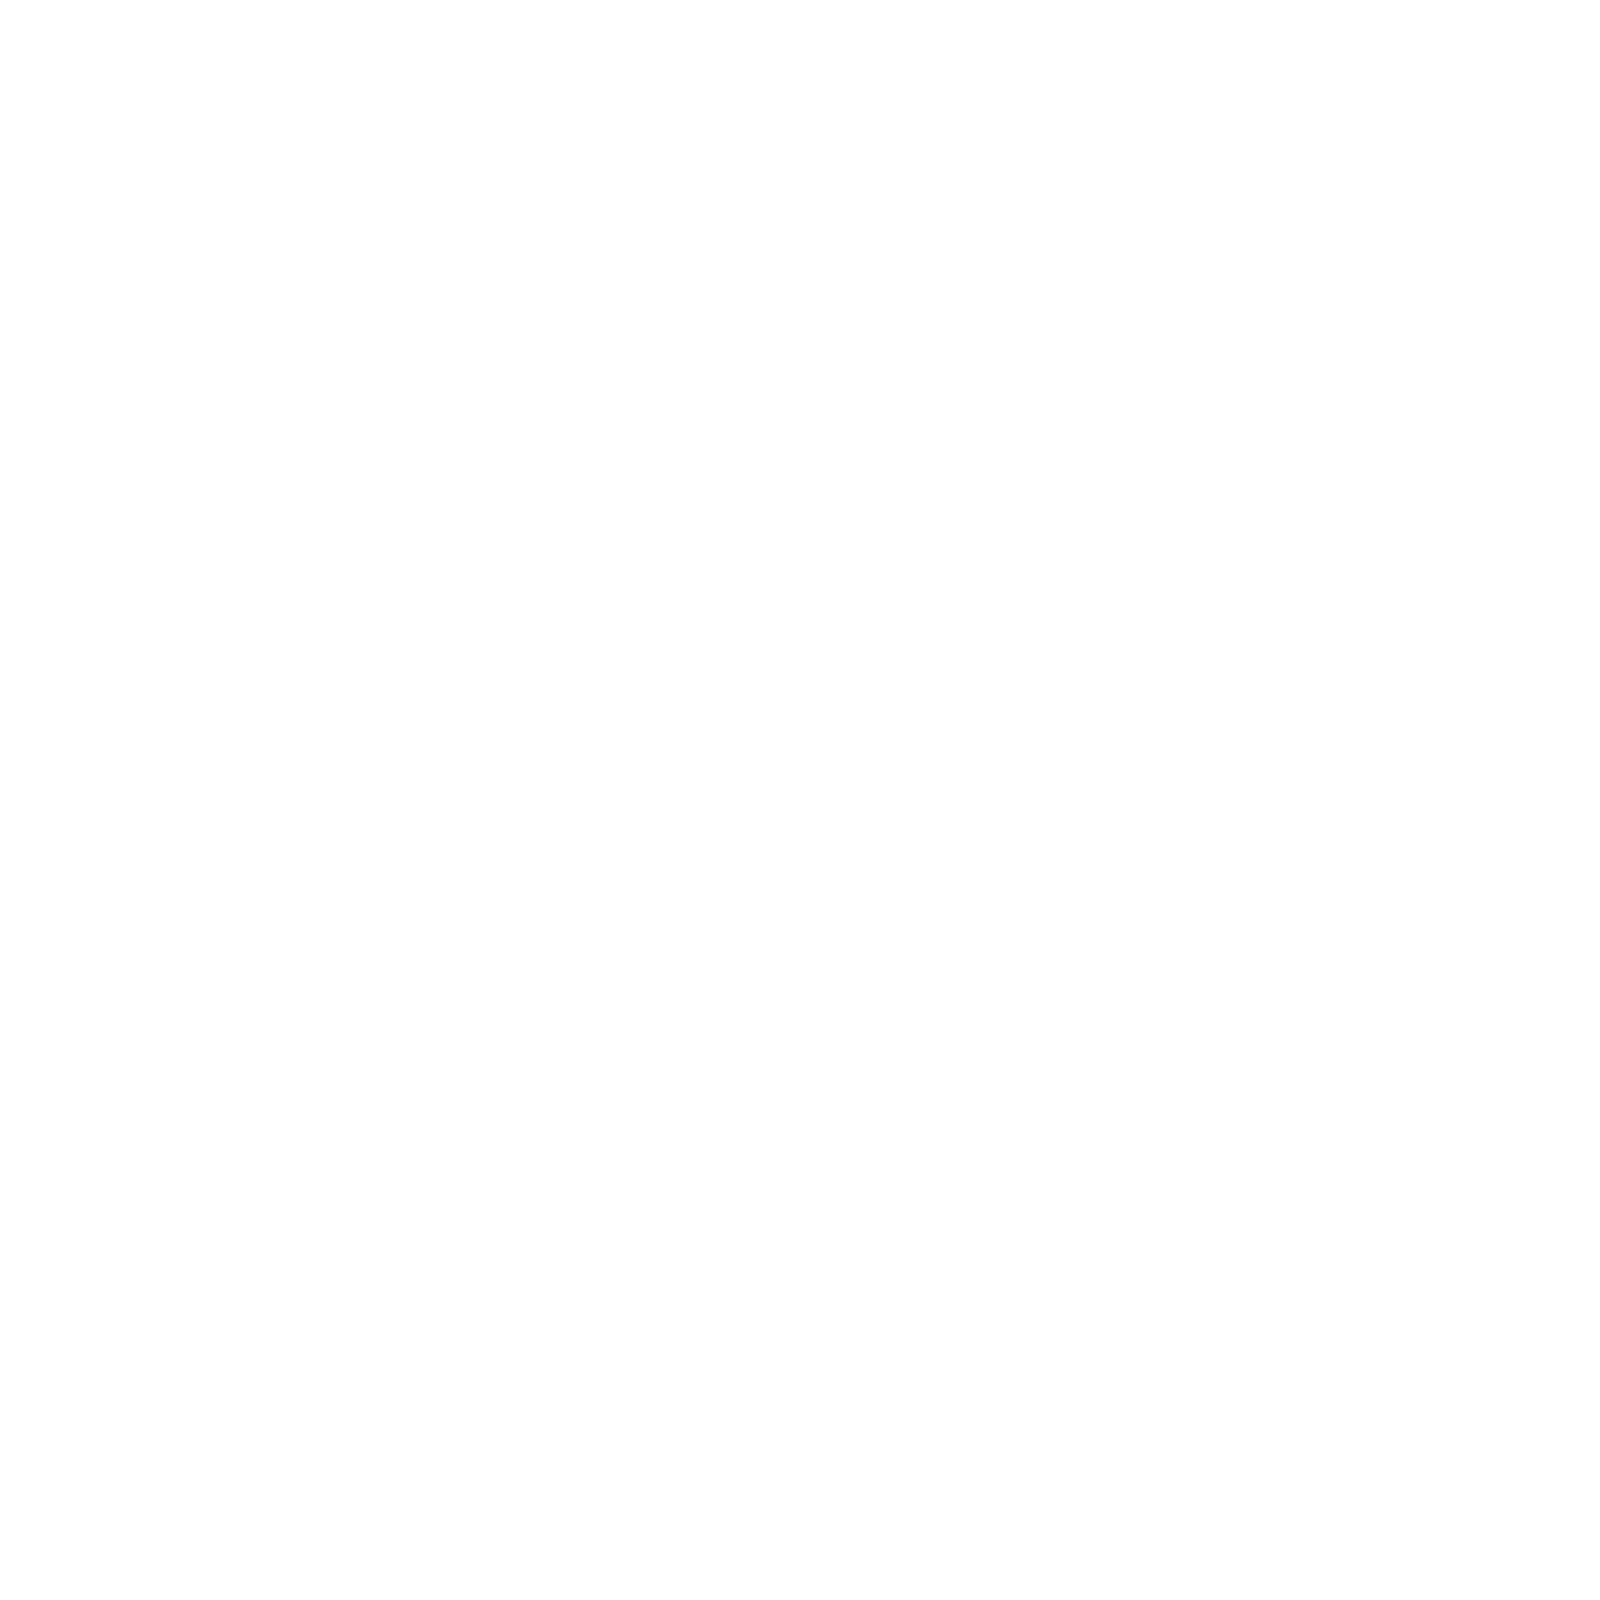 digital-barriers-project-logo